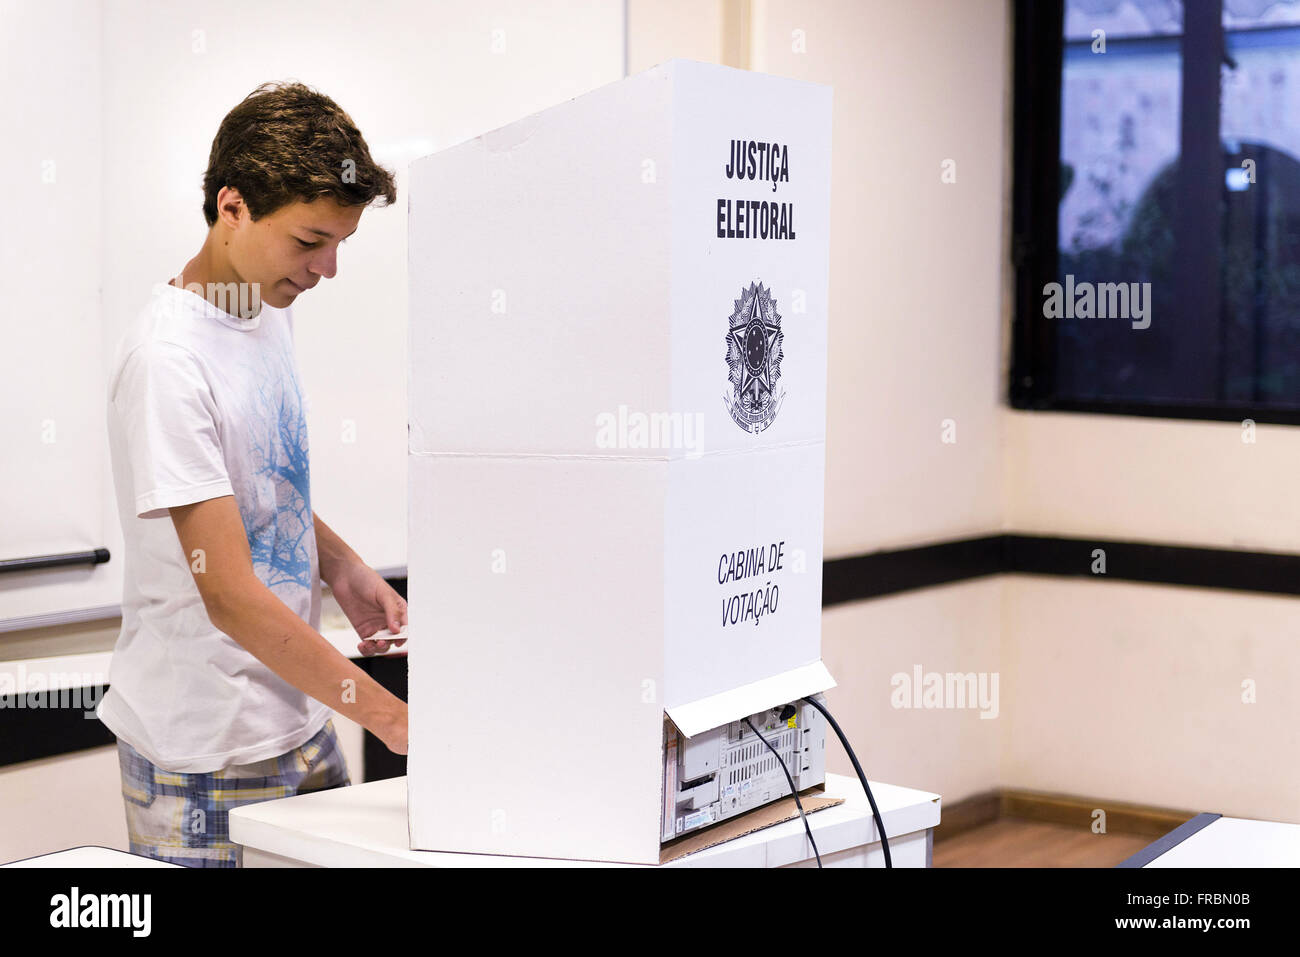 Teen voter voting in electronic urn at PUC-Rio - Elections 2014 - Stock Image